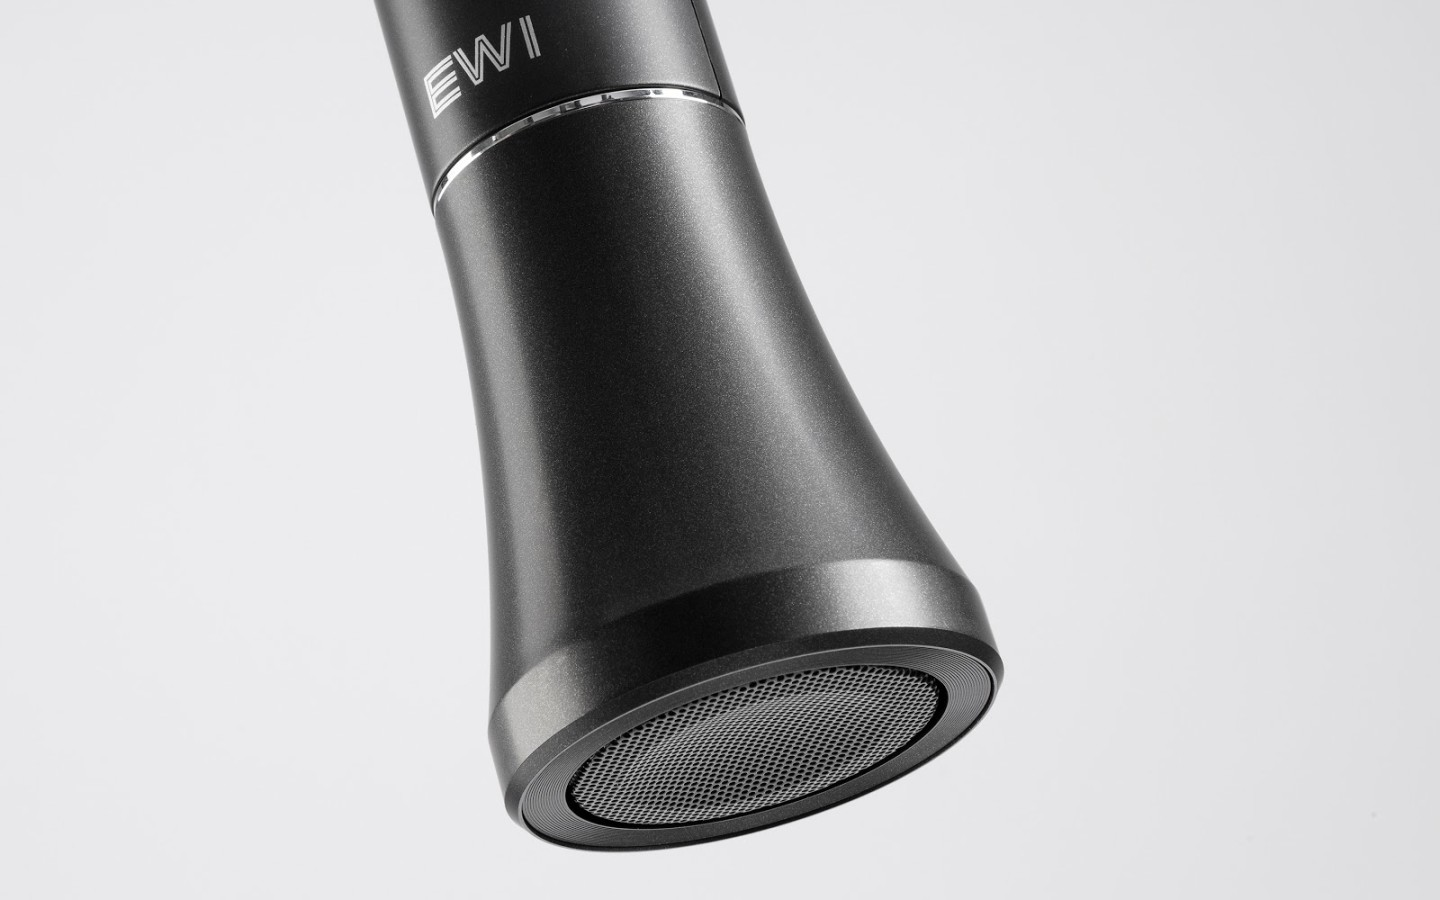 The EWI Solo features its own speaker for play anywhere convenience